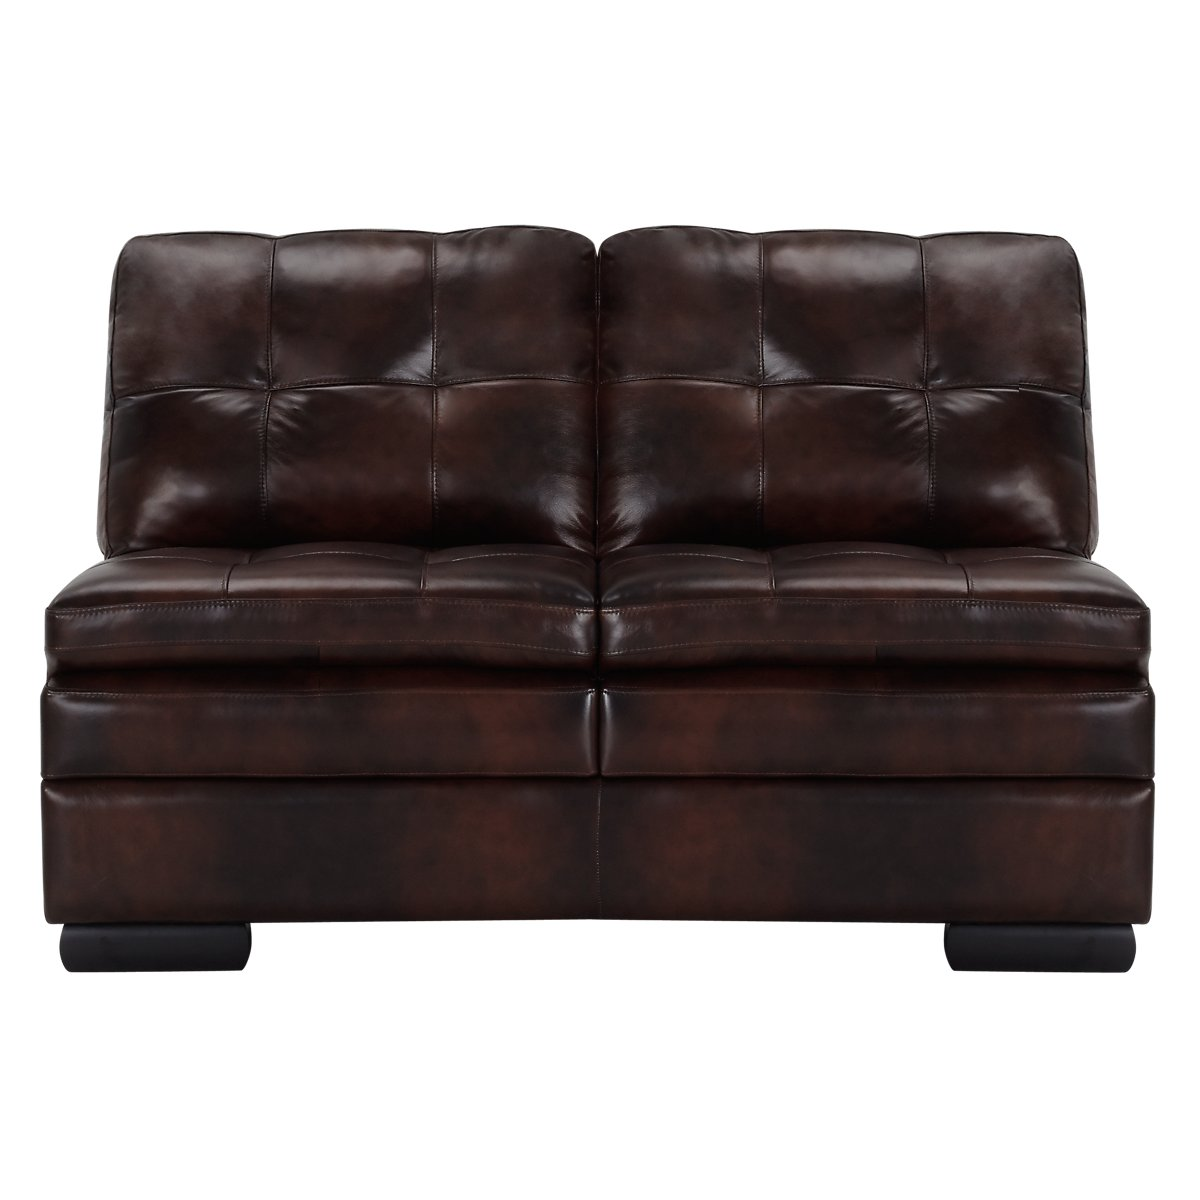 City furniture trevor dark brown leather large right for Brown leather sectional with chaise